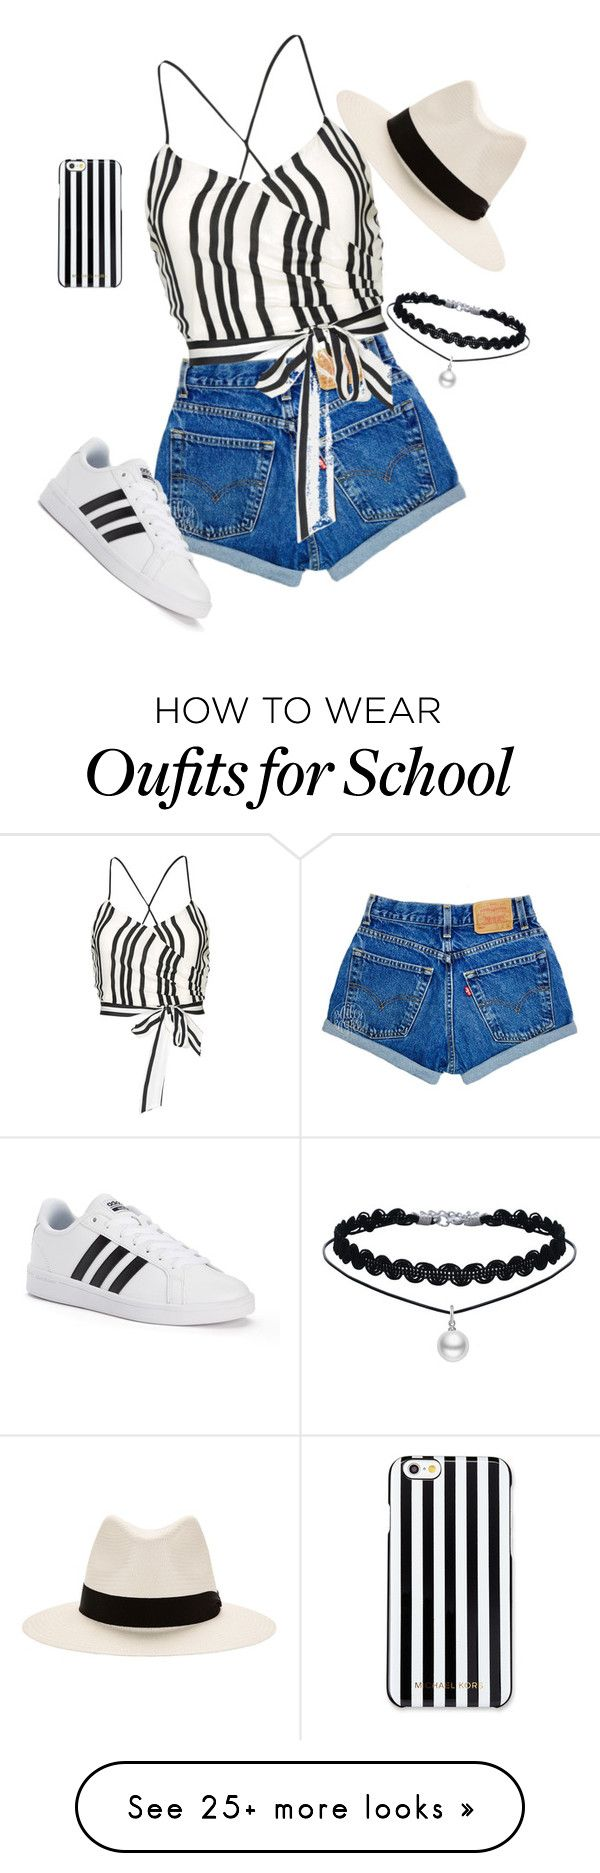 """Kicking it old school"" by denverheather on Polyvore featuring Alice + Olivia, rag & bone, MICHAEL Michael Kors and adidas"